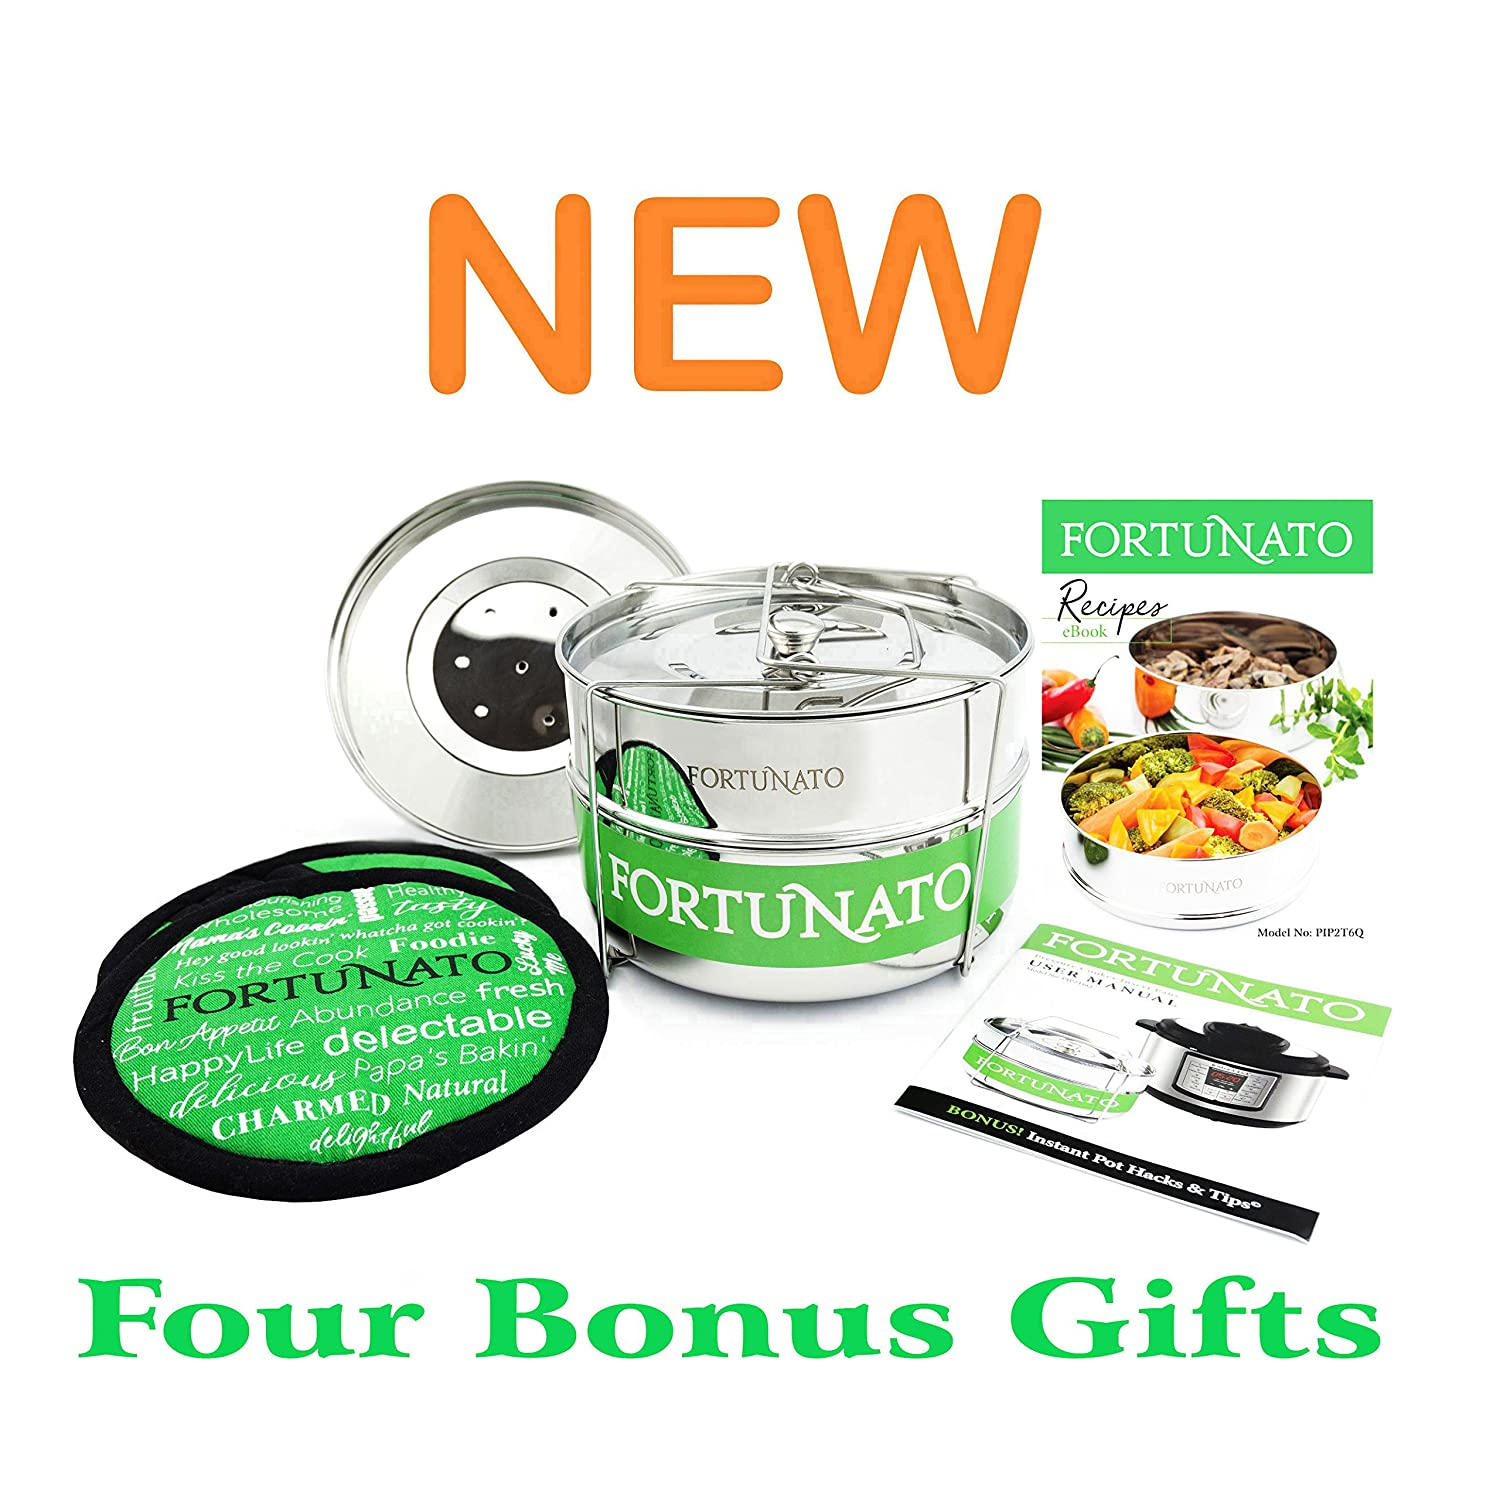 Stackable Stainless Steel Steamer Insert Pans w/Sling, BONUS Interchangeable Steam Lid, Instant Pot Hacks and Tips, Potholders, Ebook. 5, 6, 8 Quart Pressure Cooker Accessories. By FORTUNATO 2018 NEW